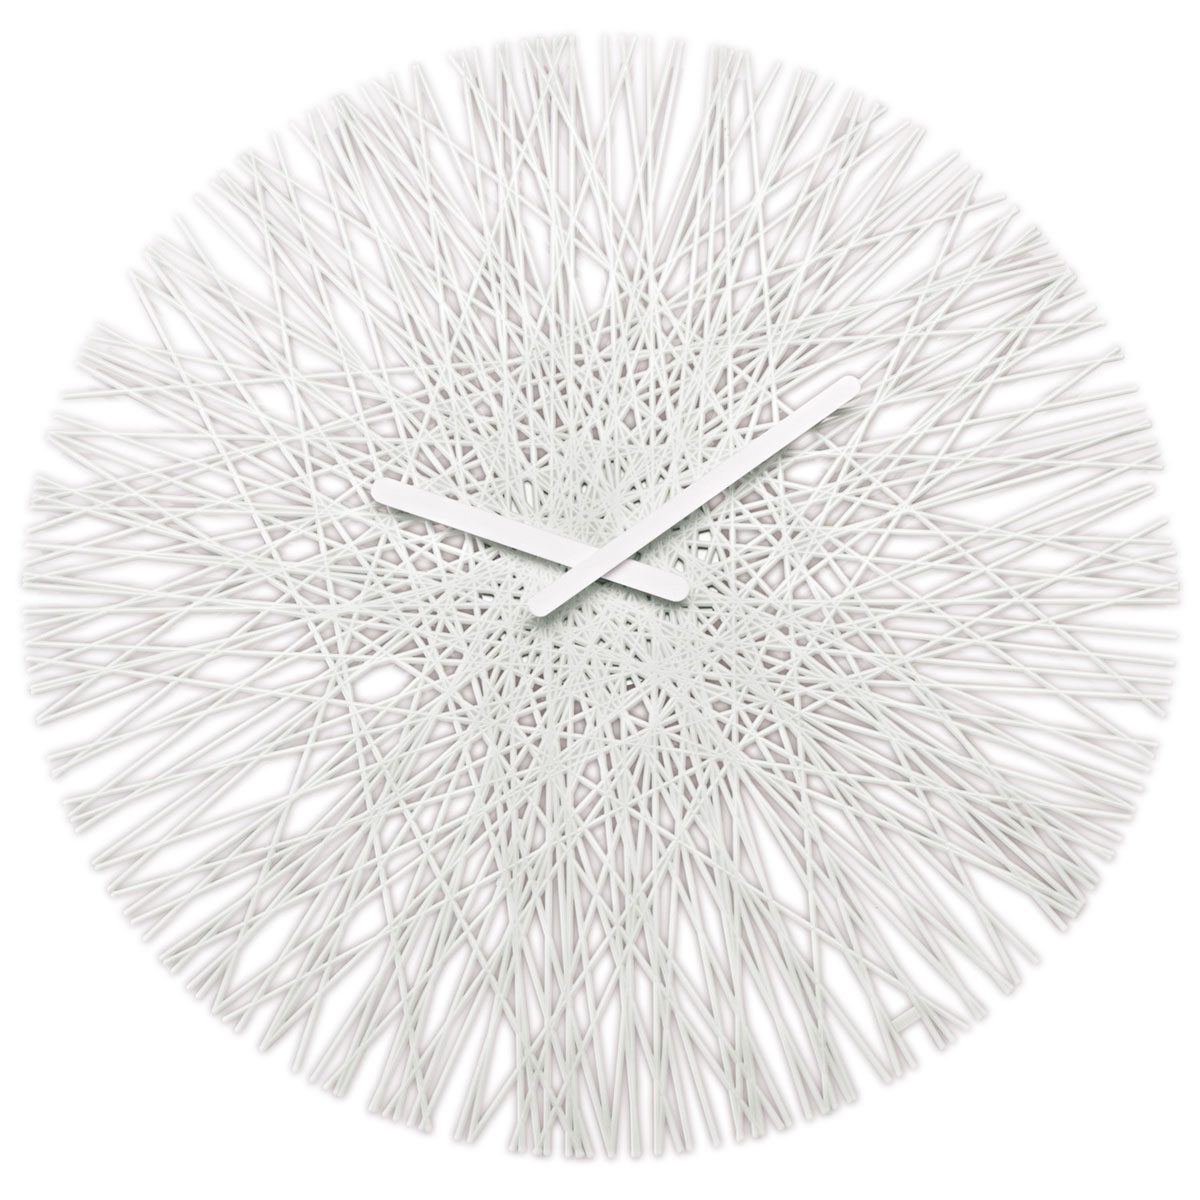 Buy Clock Buy Online Koziol Silk Wall Clock With Black Or White Hands